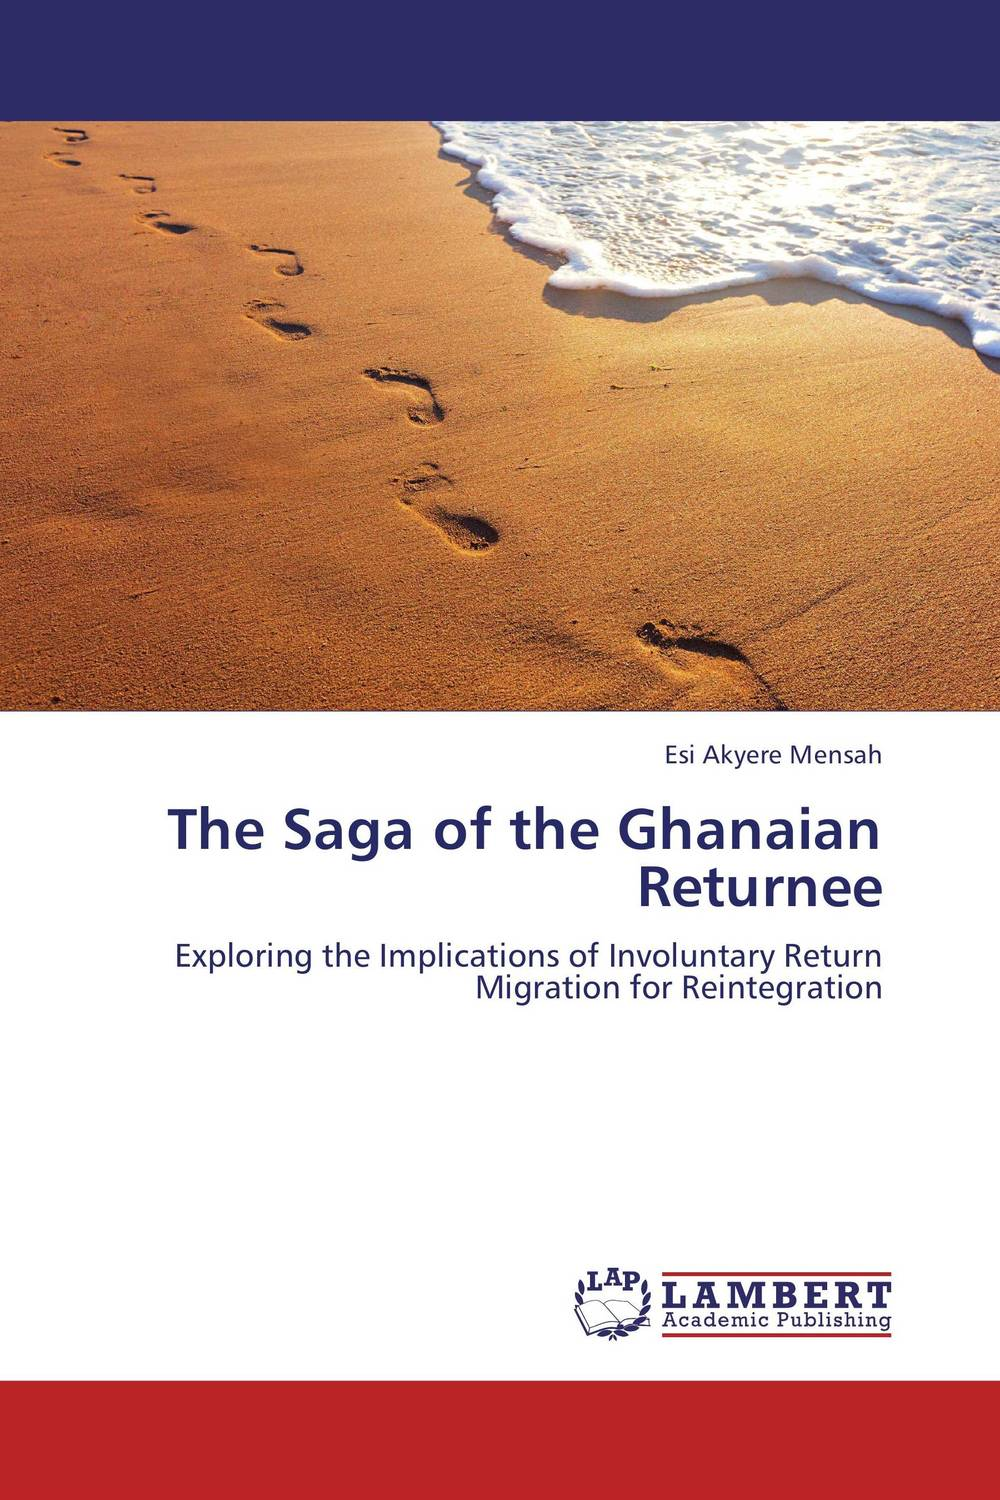 The Saga of the Ghanaian Returnee international migration and development